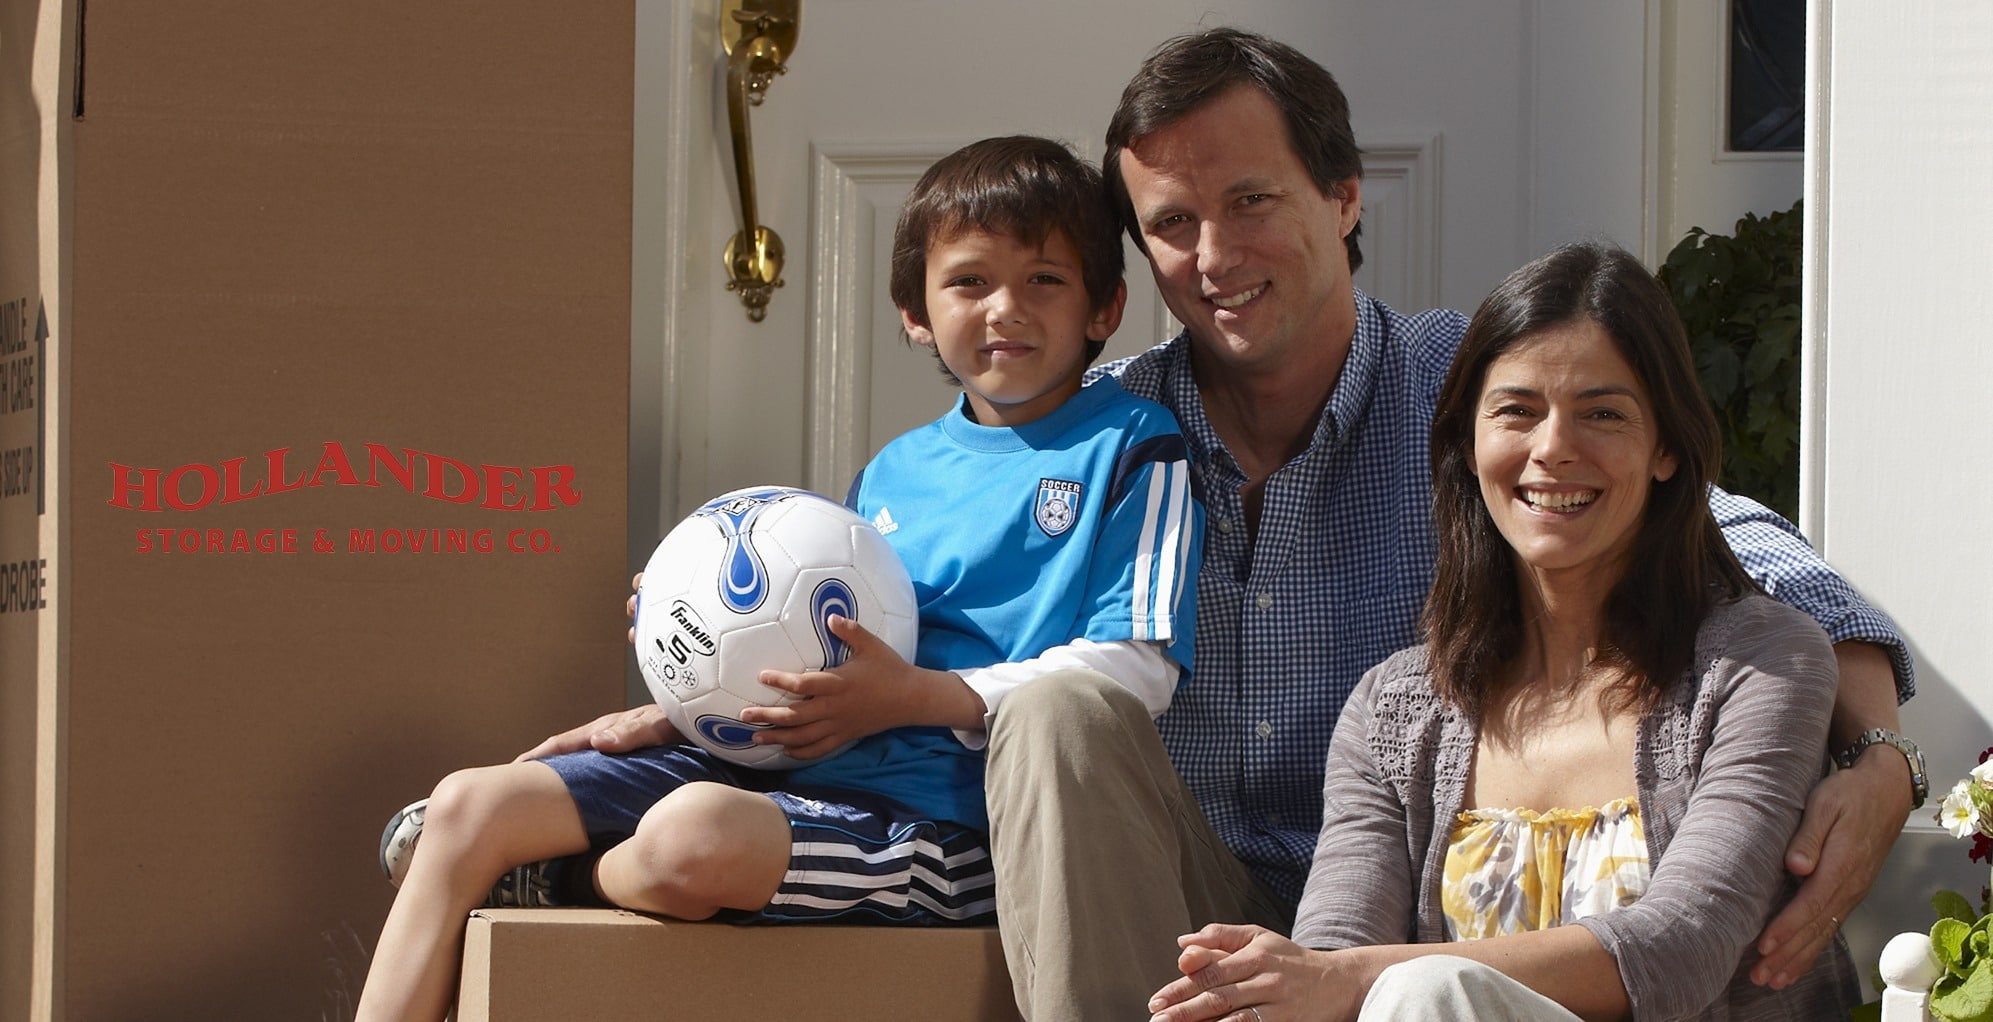 Family of three sitting on front steps smiling next to Hollander moving boxes